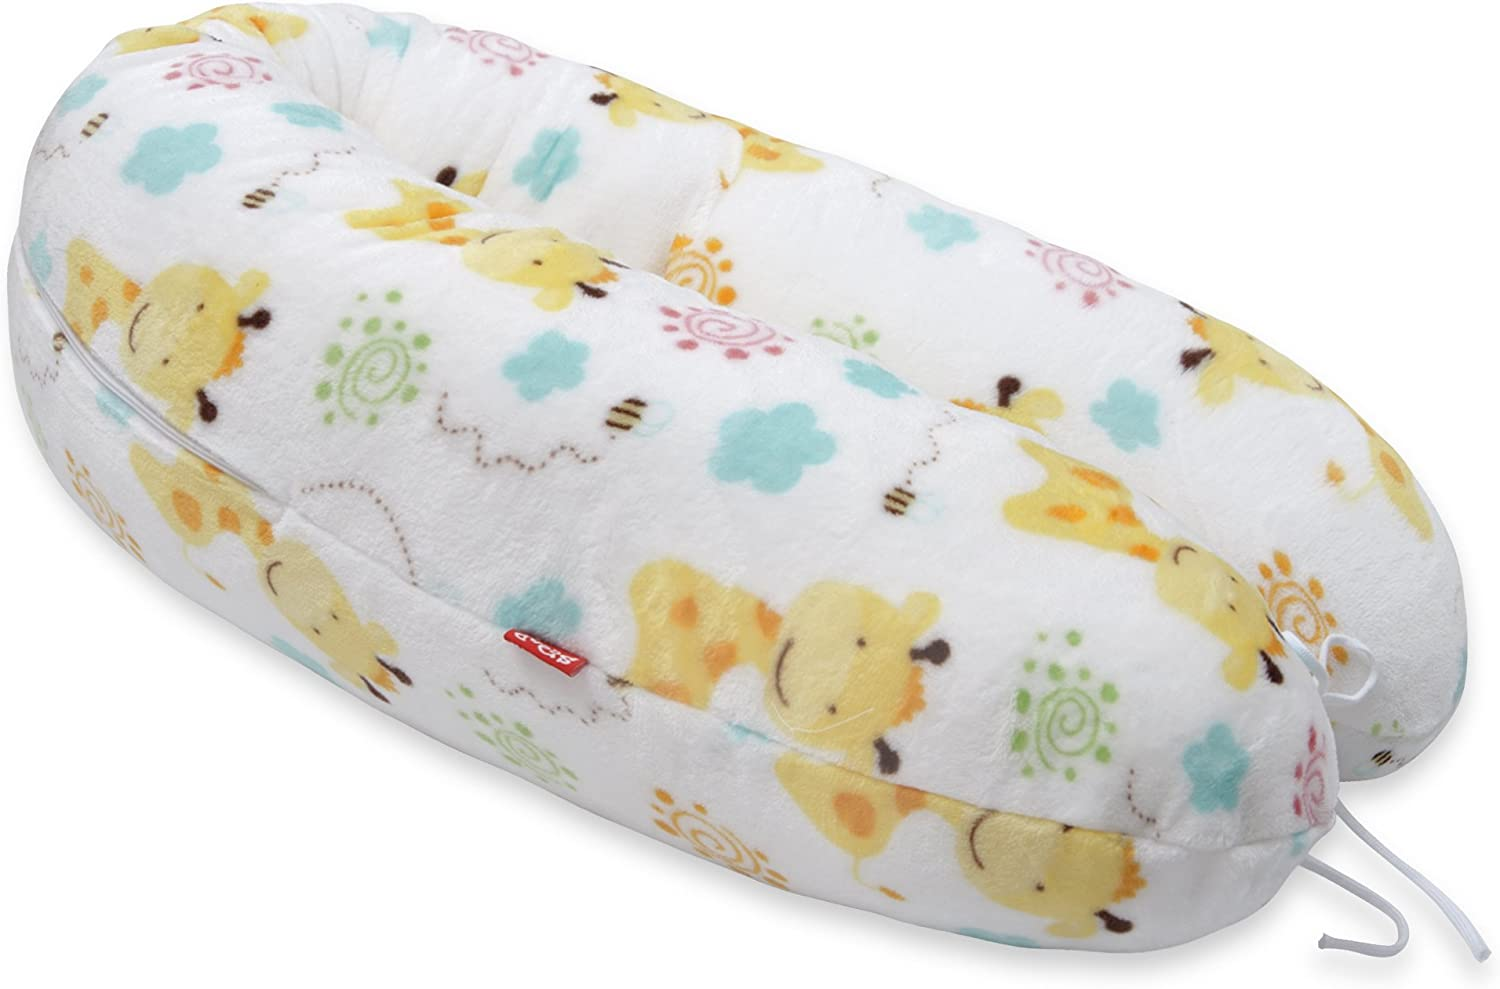 Scamp Nursing Pillow, Pregnancy Pillow